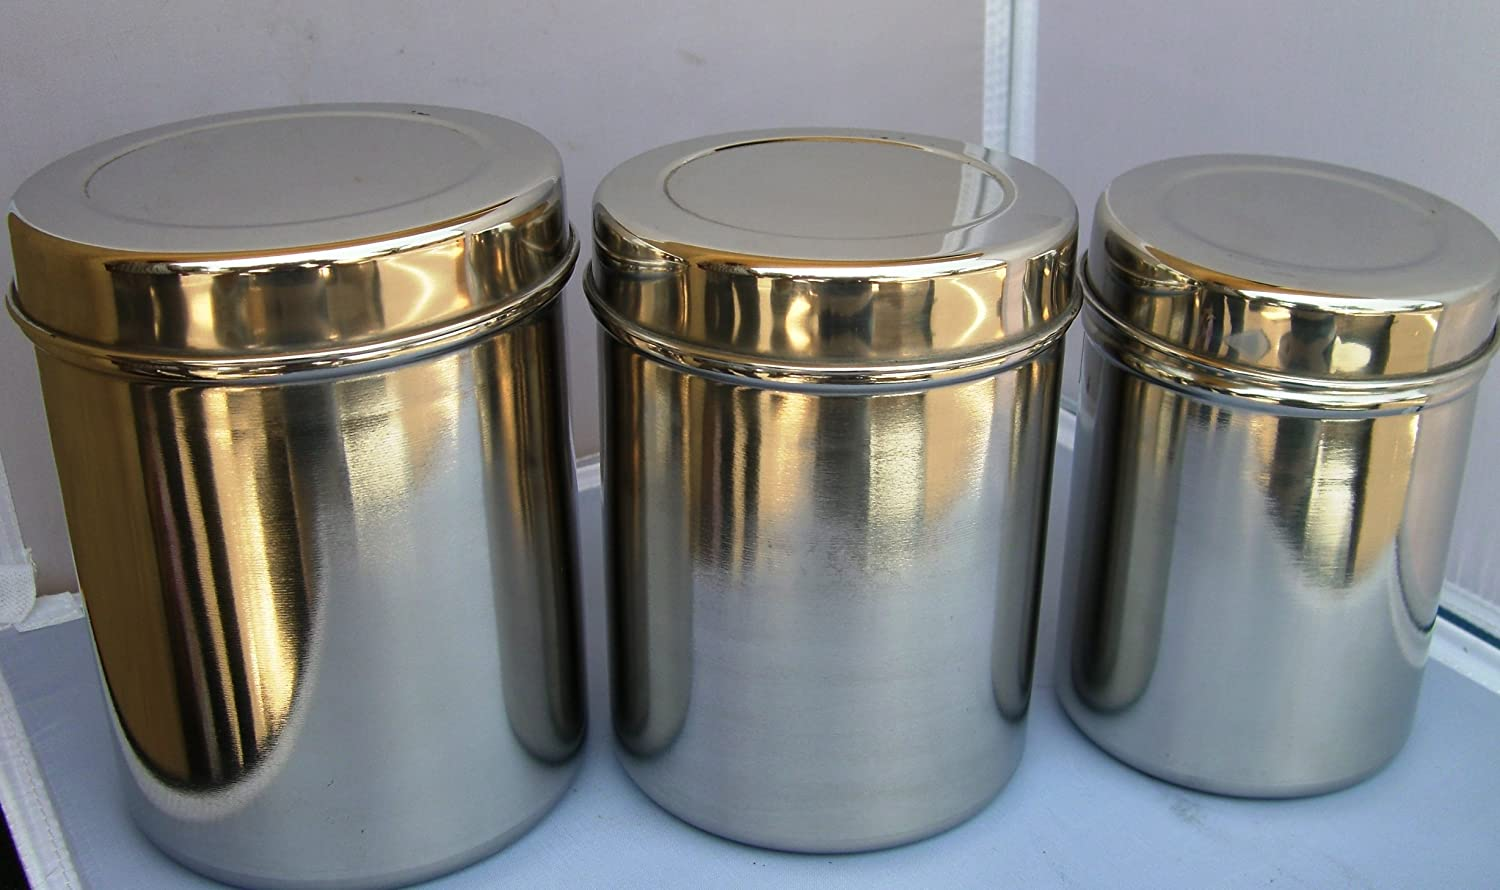 amazon com stainless steel tea tin canister container set of 3